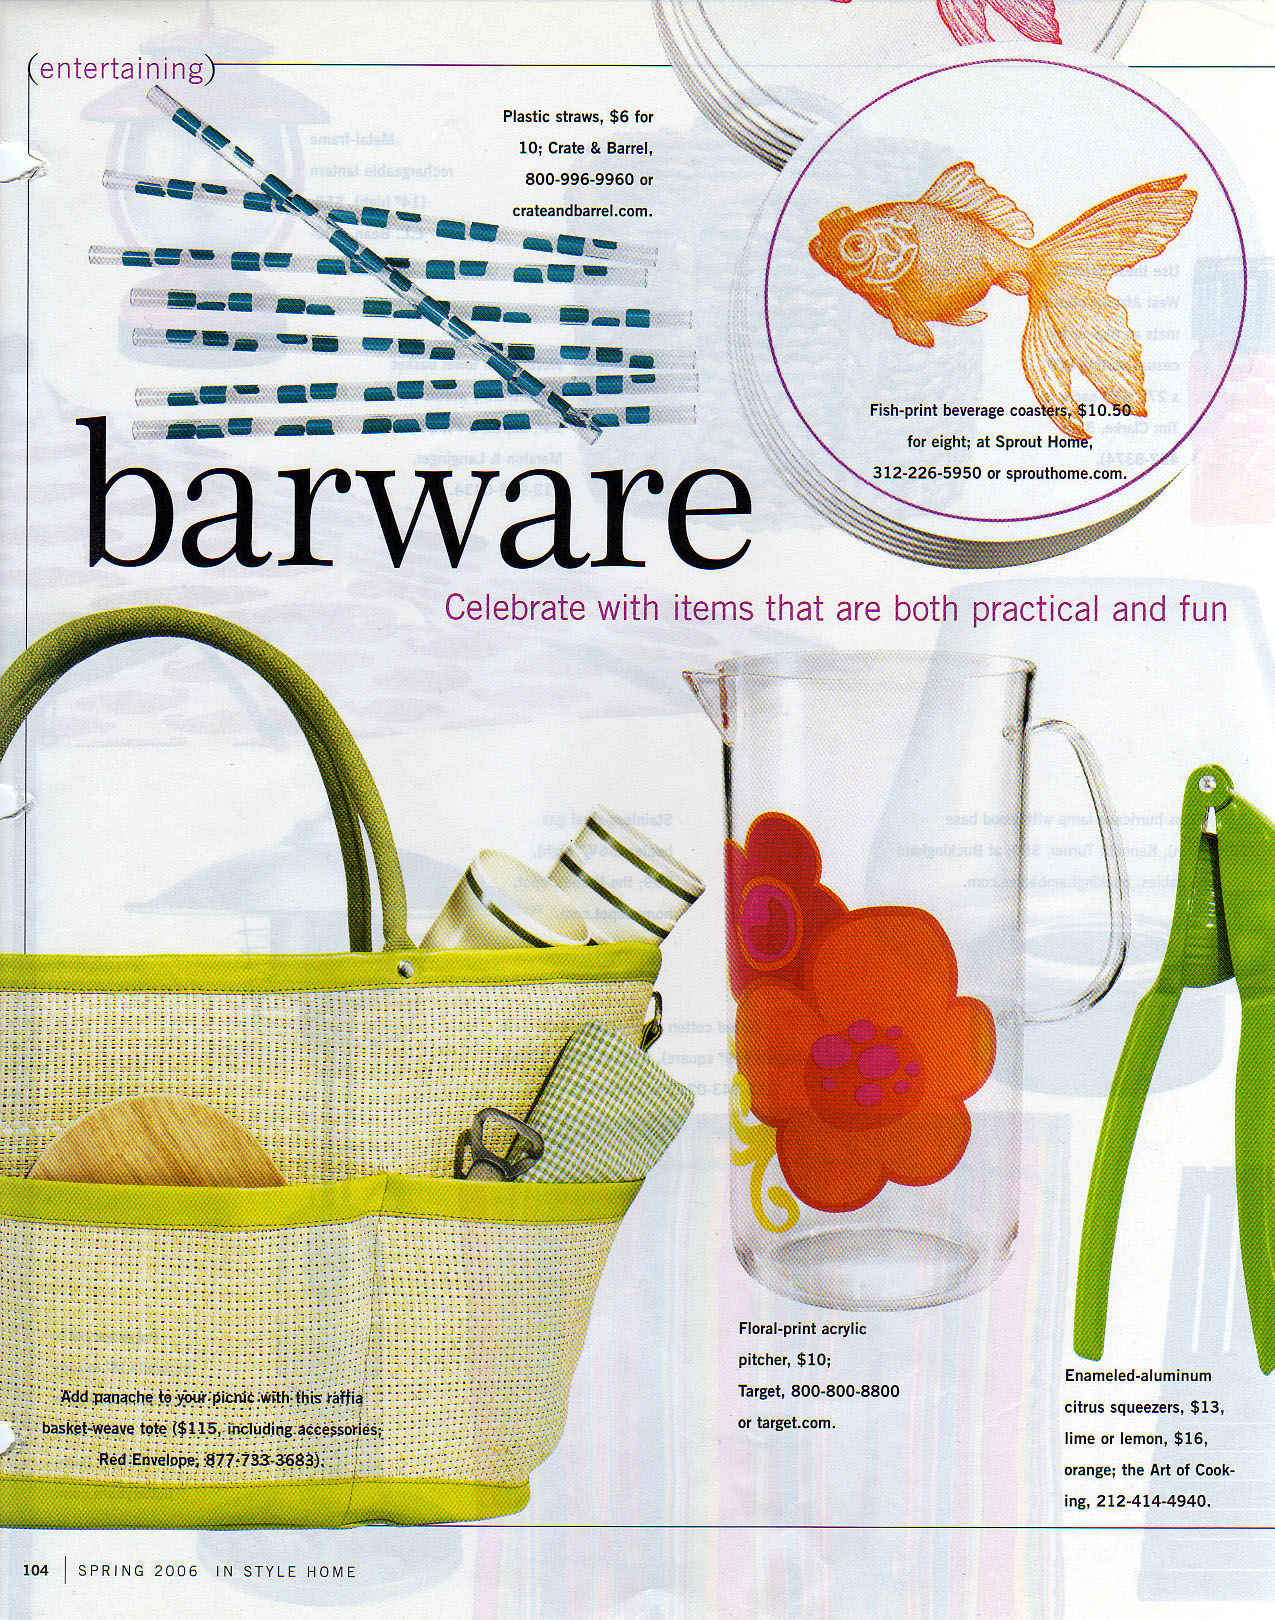 InStyle Home Spring 2006.jpg